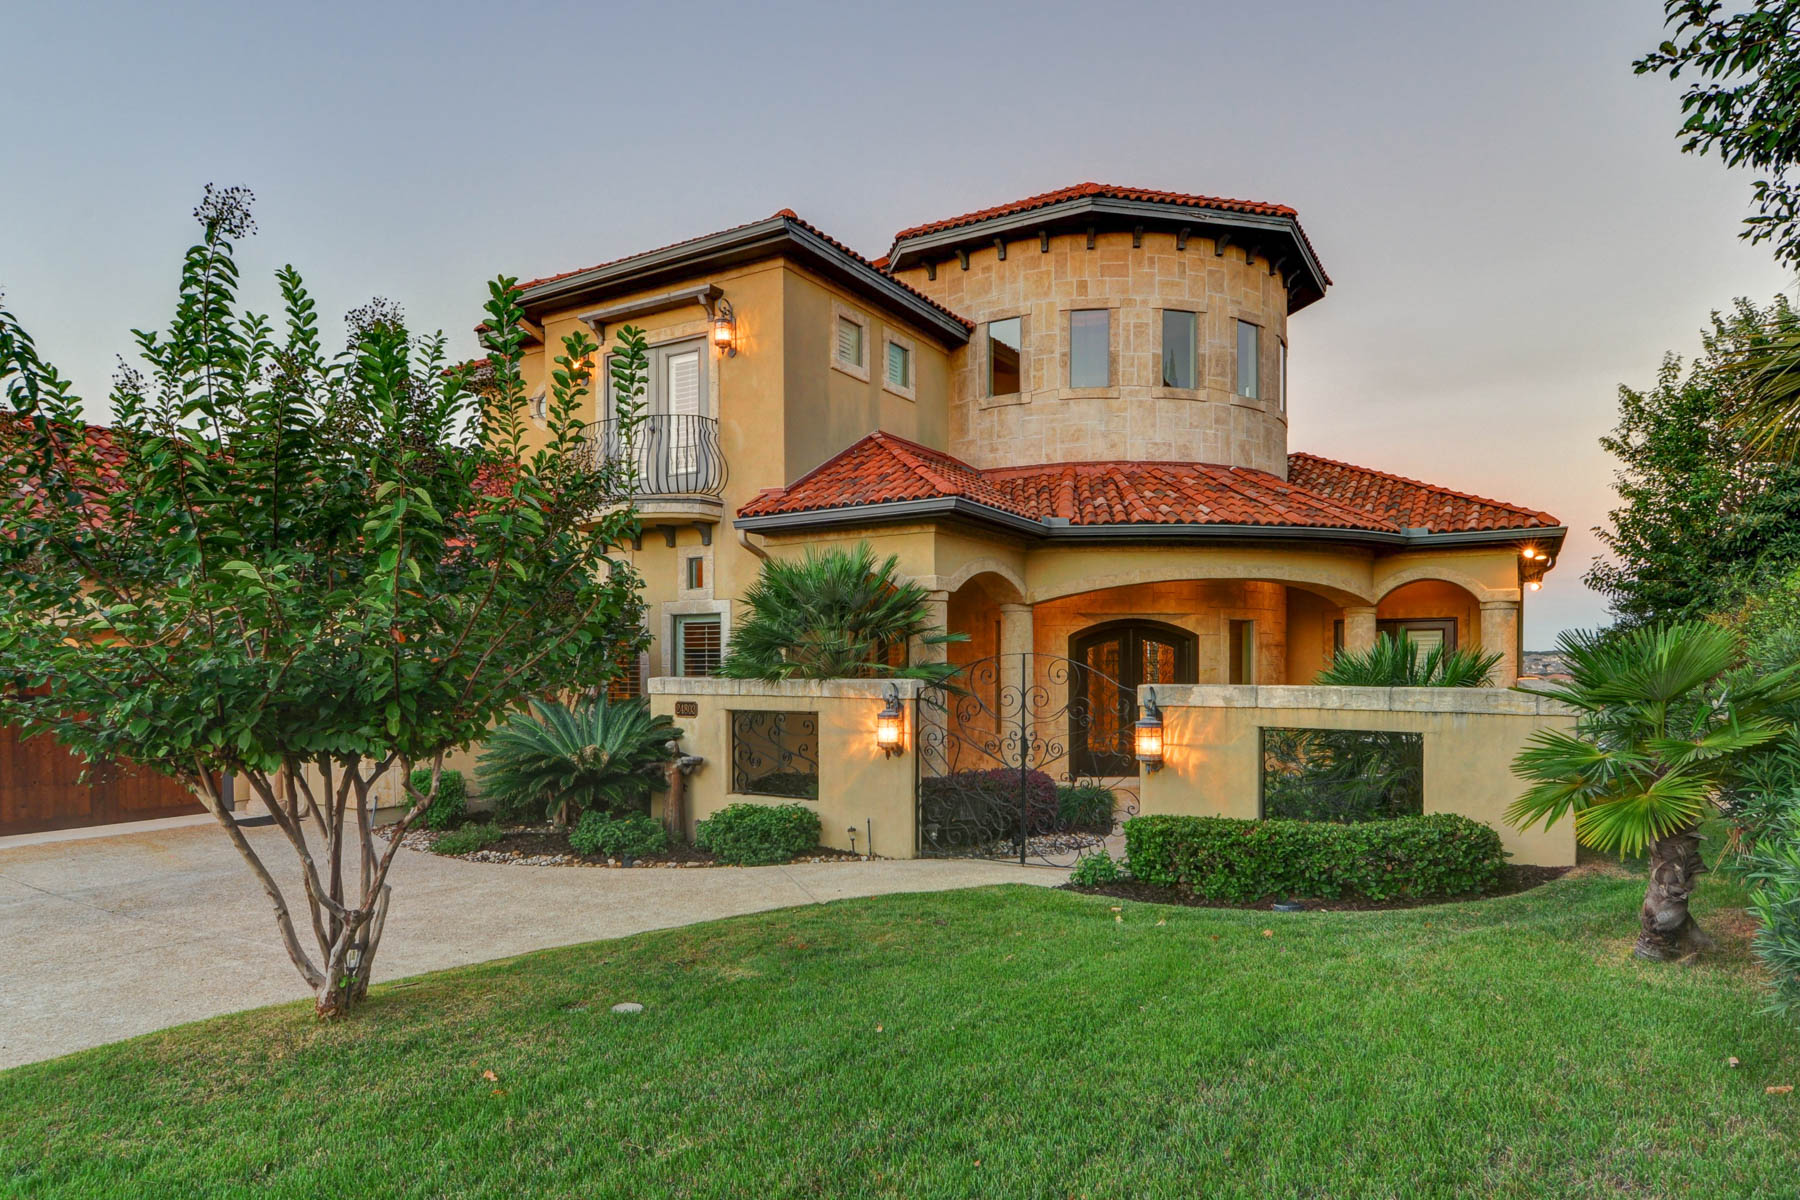 Additional photo for property listing at Million-Dollar Views in Summerglen 24803 Parview Cir San Antonio, Texas 78260 Estados Unidos